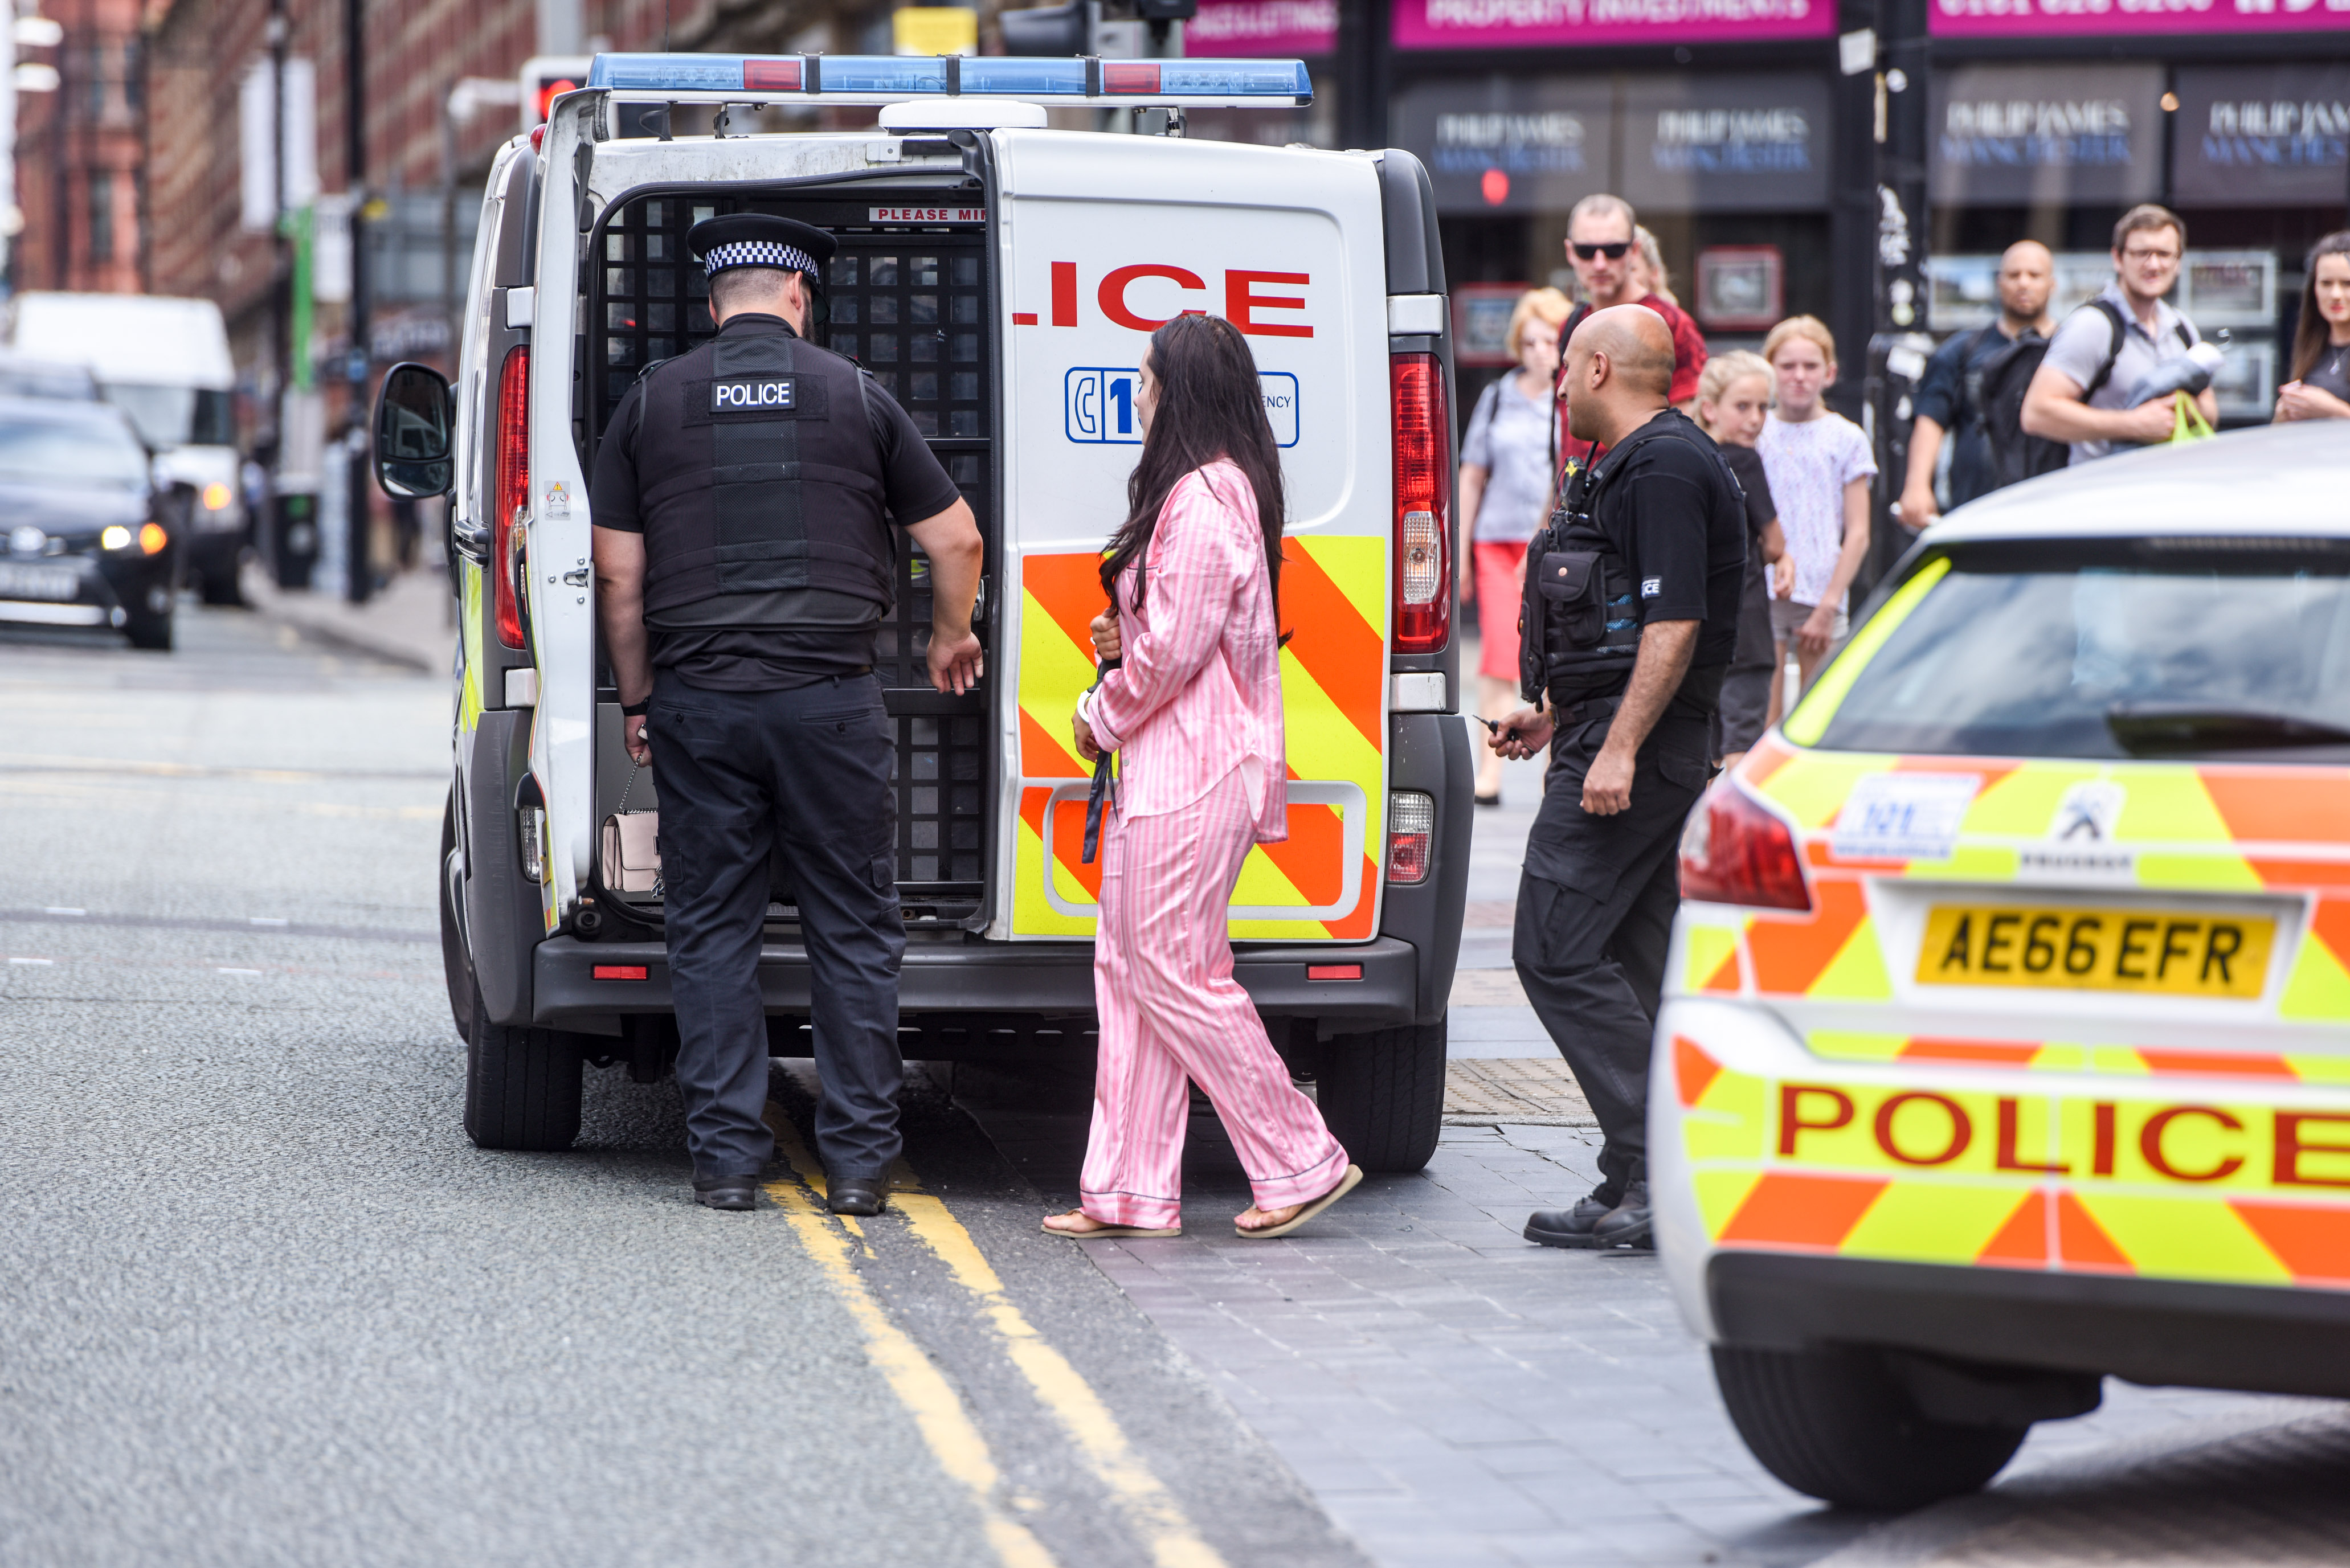 MASSIVE POLICE PRESENCE OUTSIDE MANCHESTER HILTON AFTER SUSPECTED KNIFE ATTACK